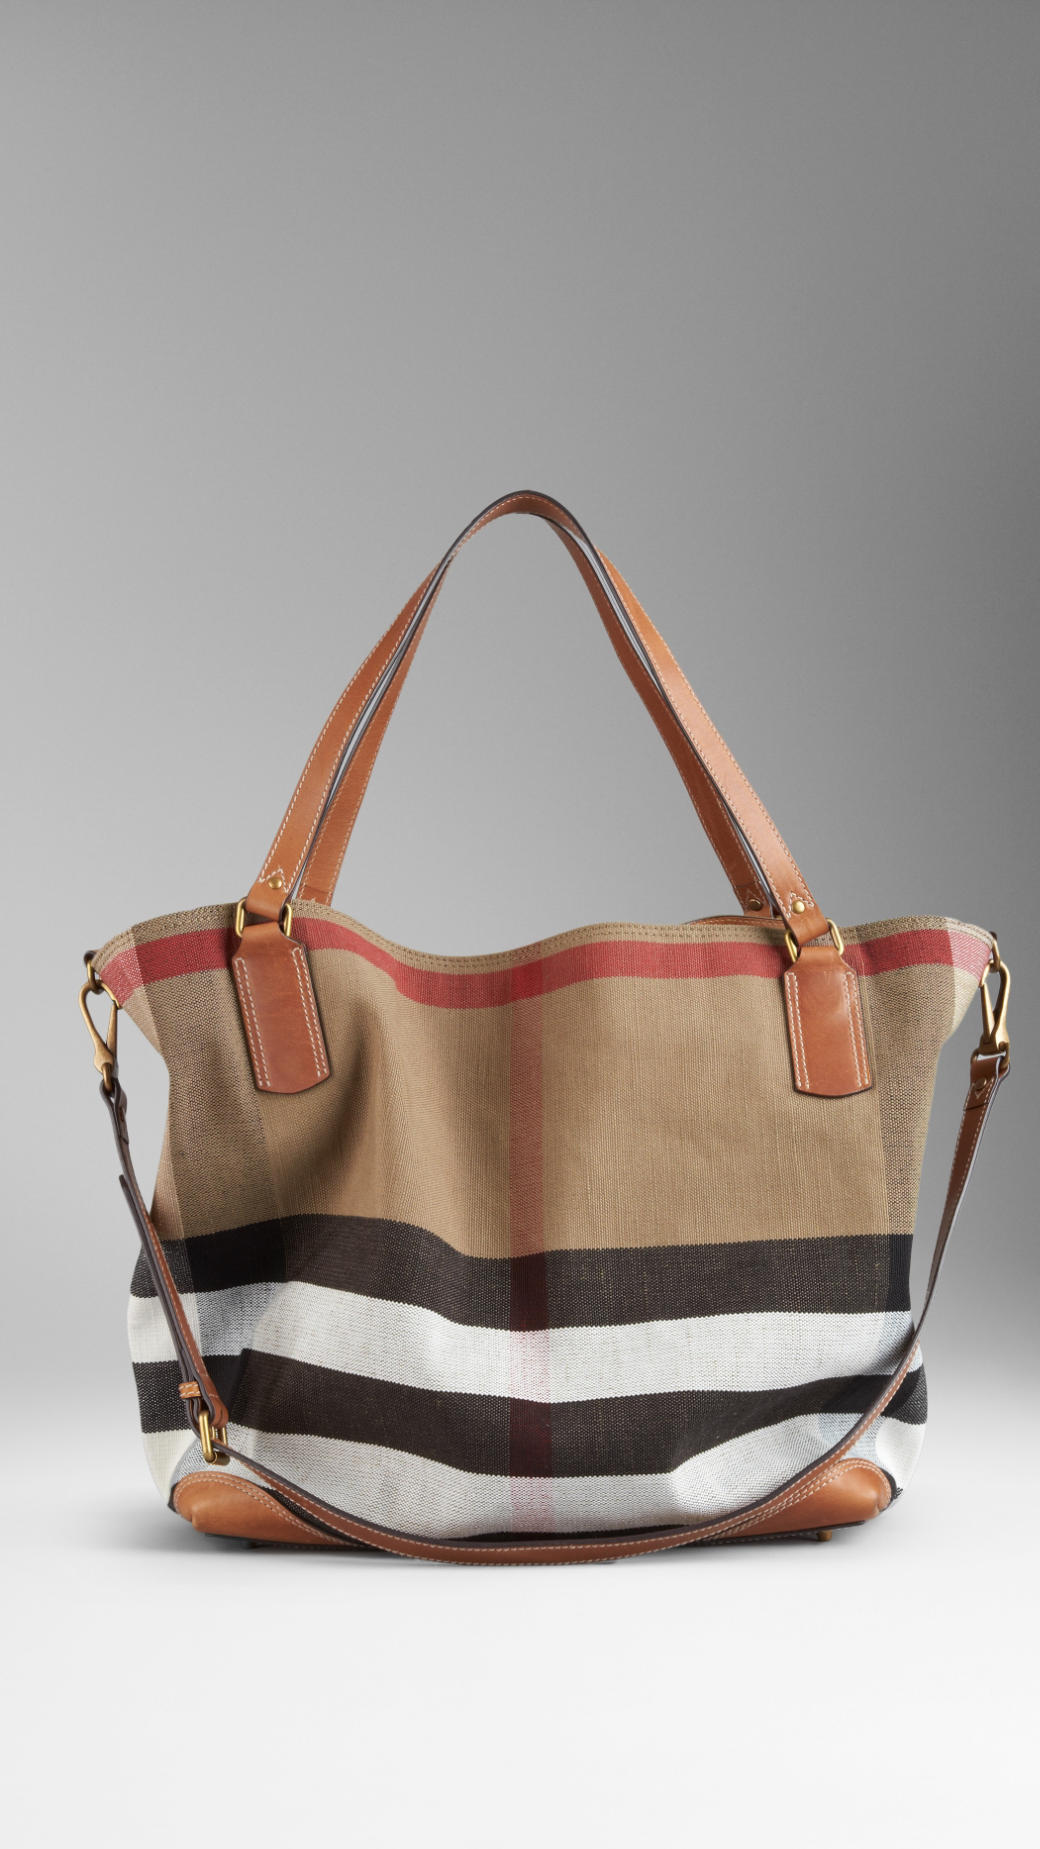 fd2aee345bb7 Lyst - Burberry Brit Large Brit Check Tote Bag in Brown